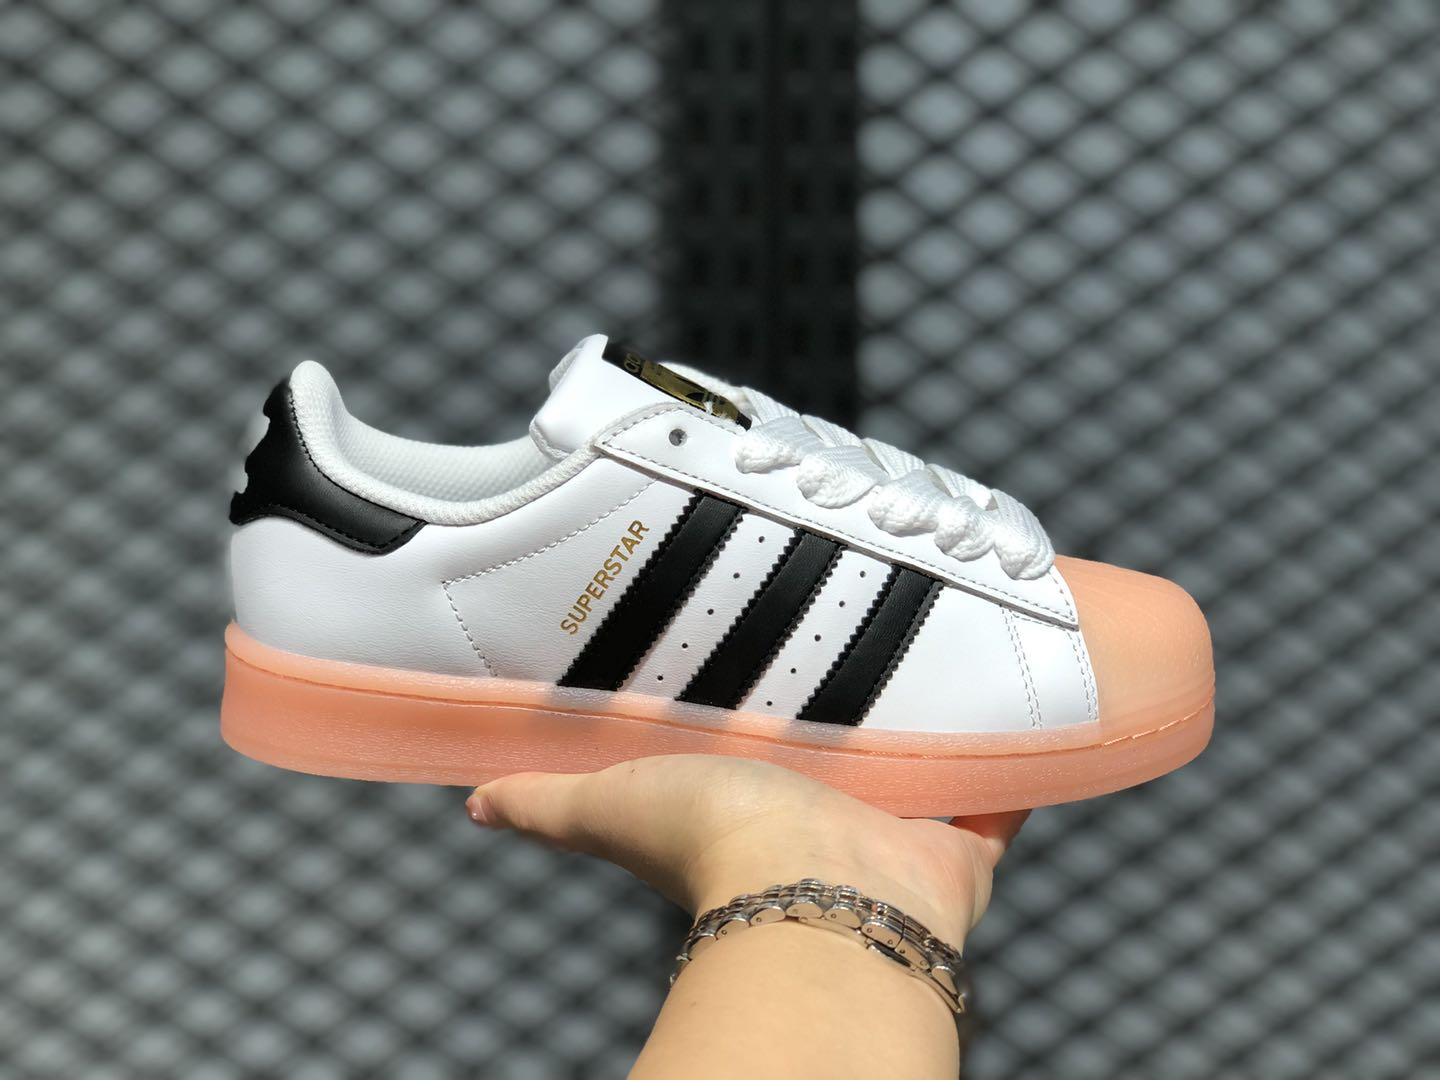 Muestra puerta perecer  Adidas WMNS Superstar White/Black-Hazel Coral FW3553 To Buy | Sneakers Big  Sale